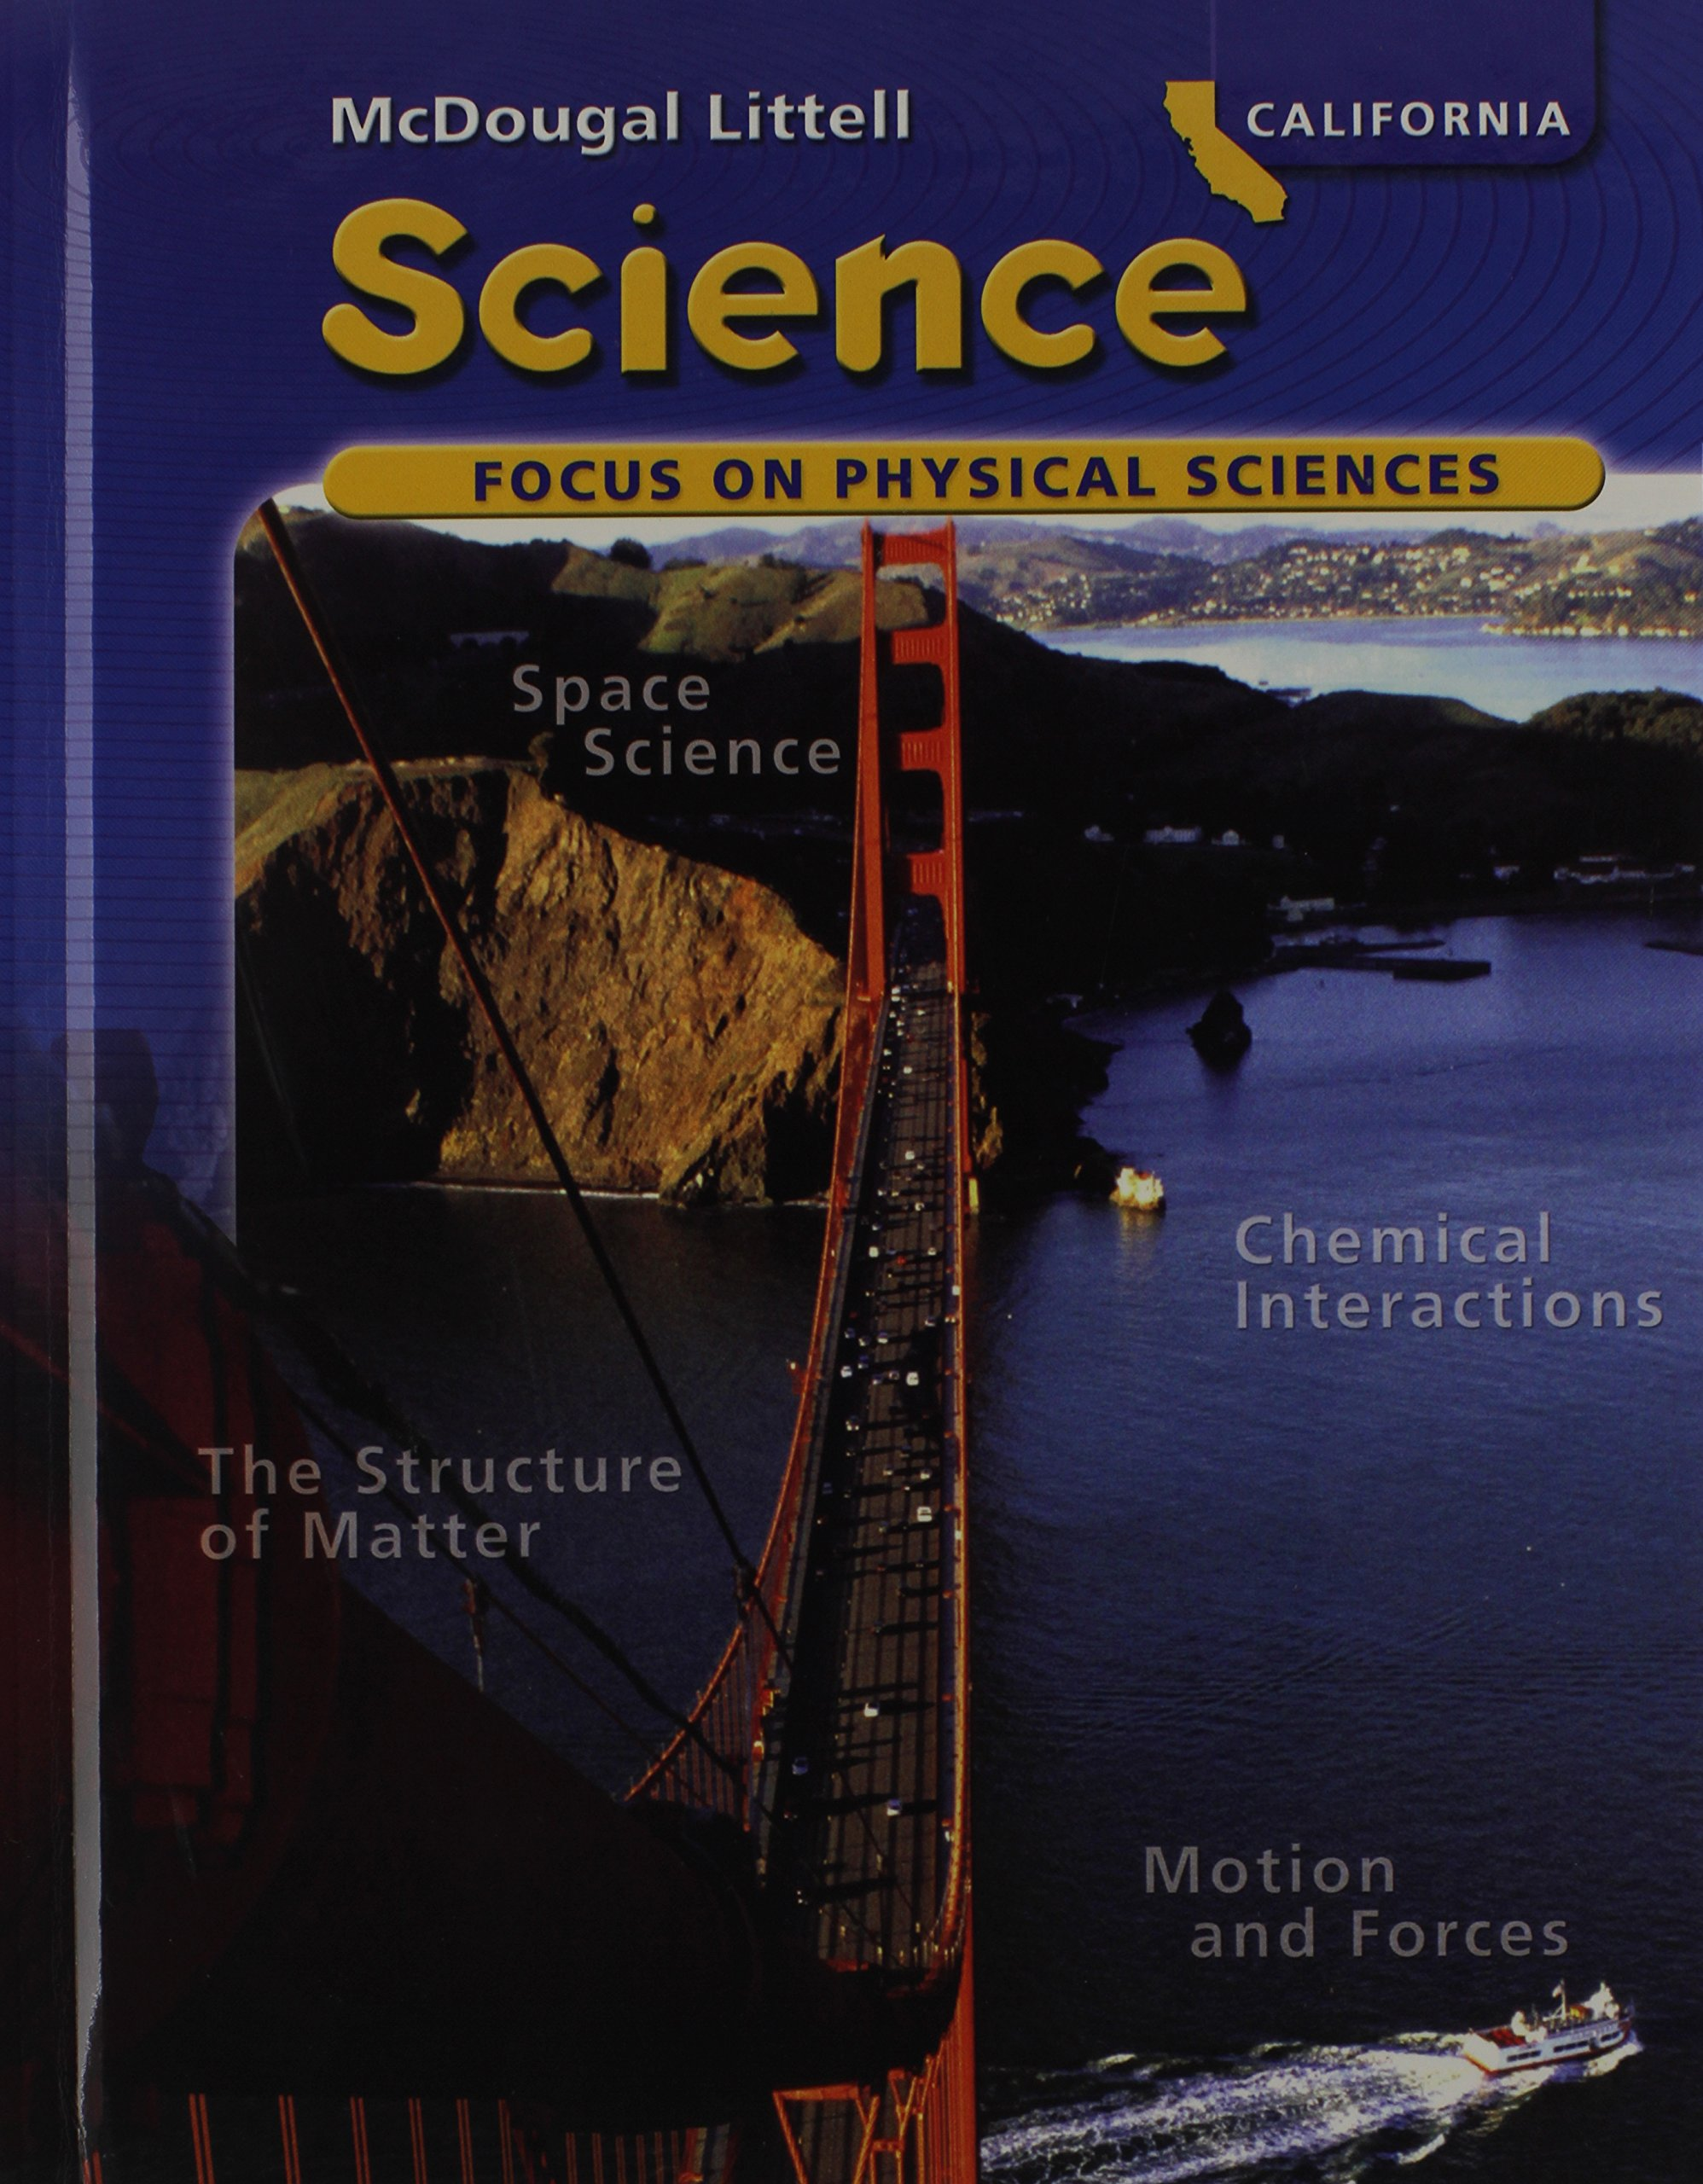 McDougal Littell Science: Focus on Physical Sciences ebook